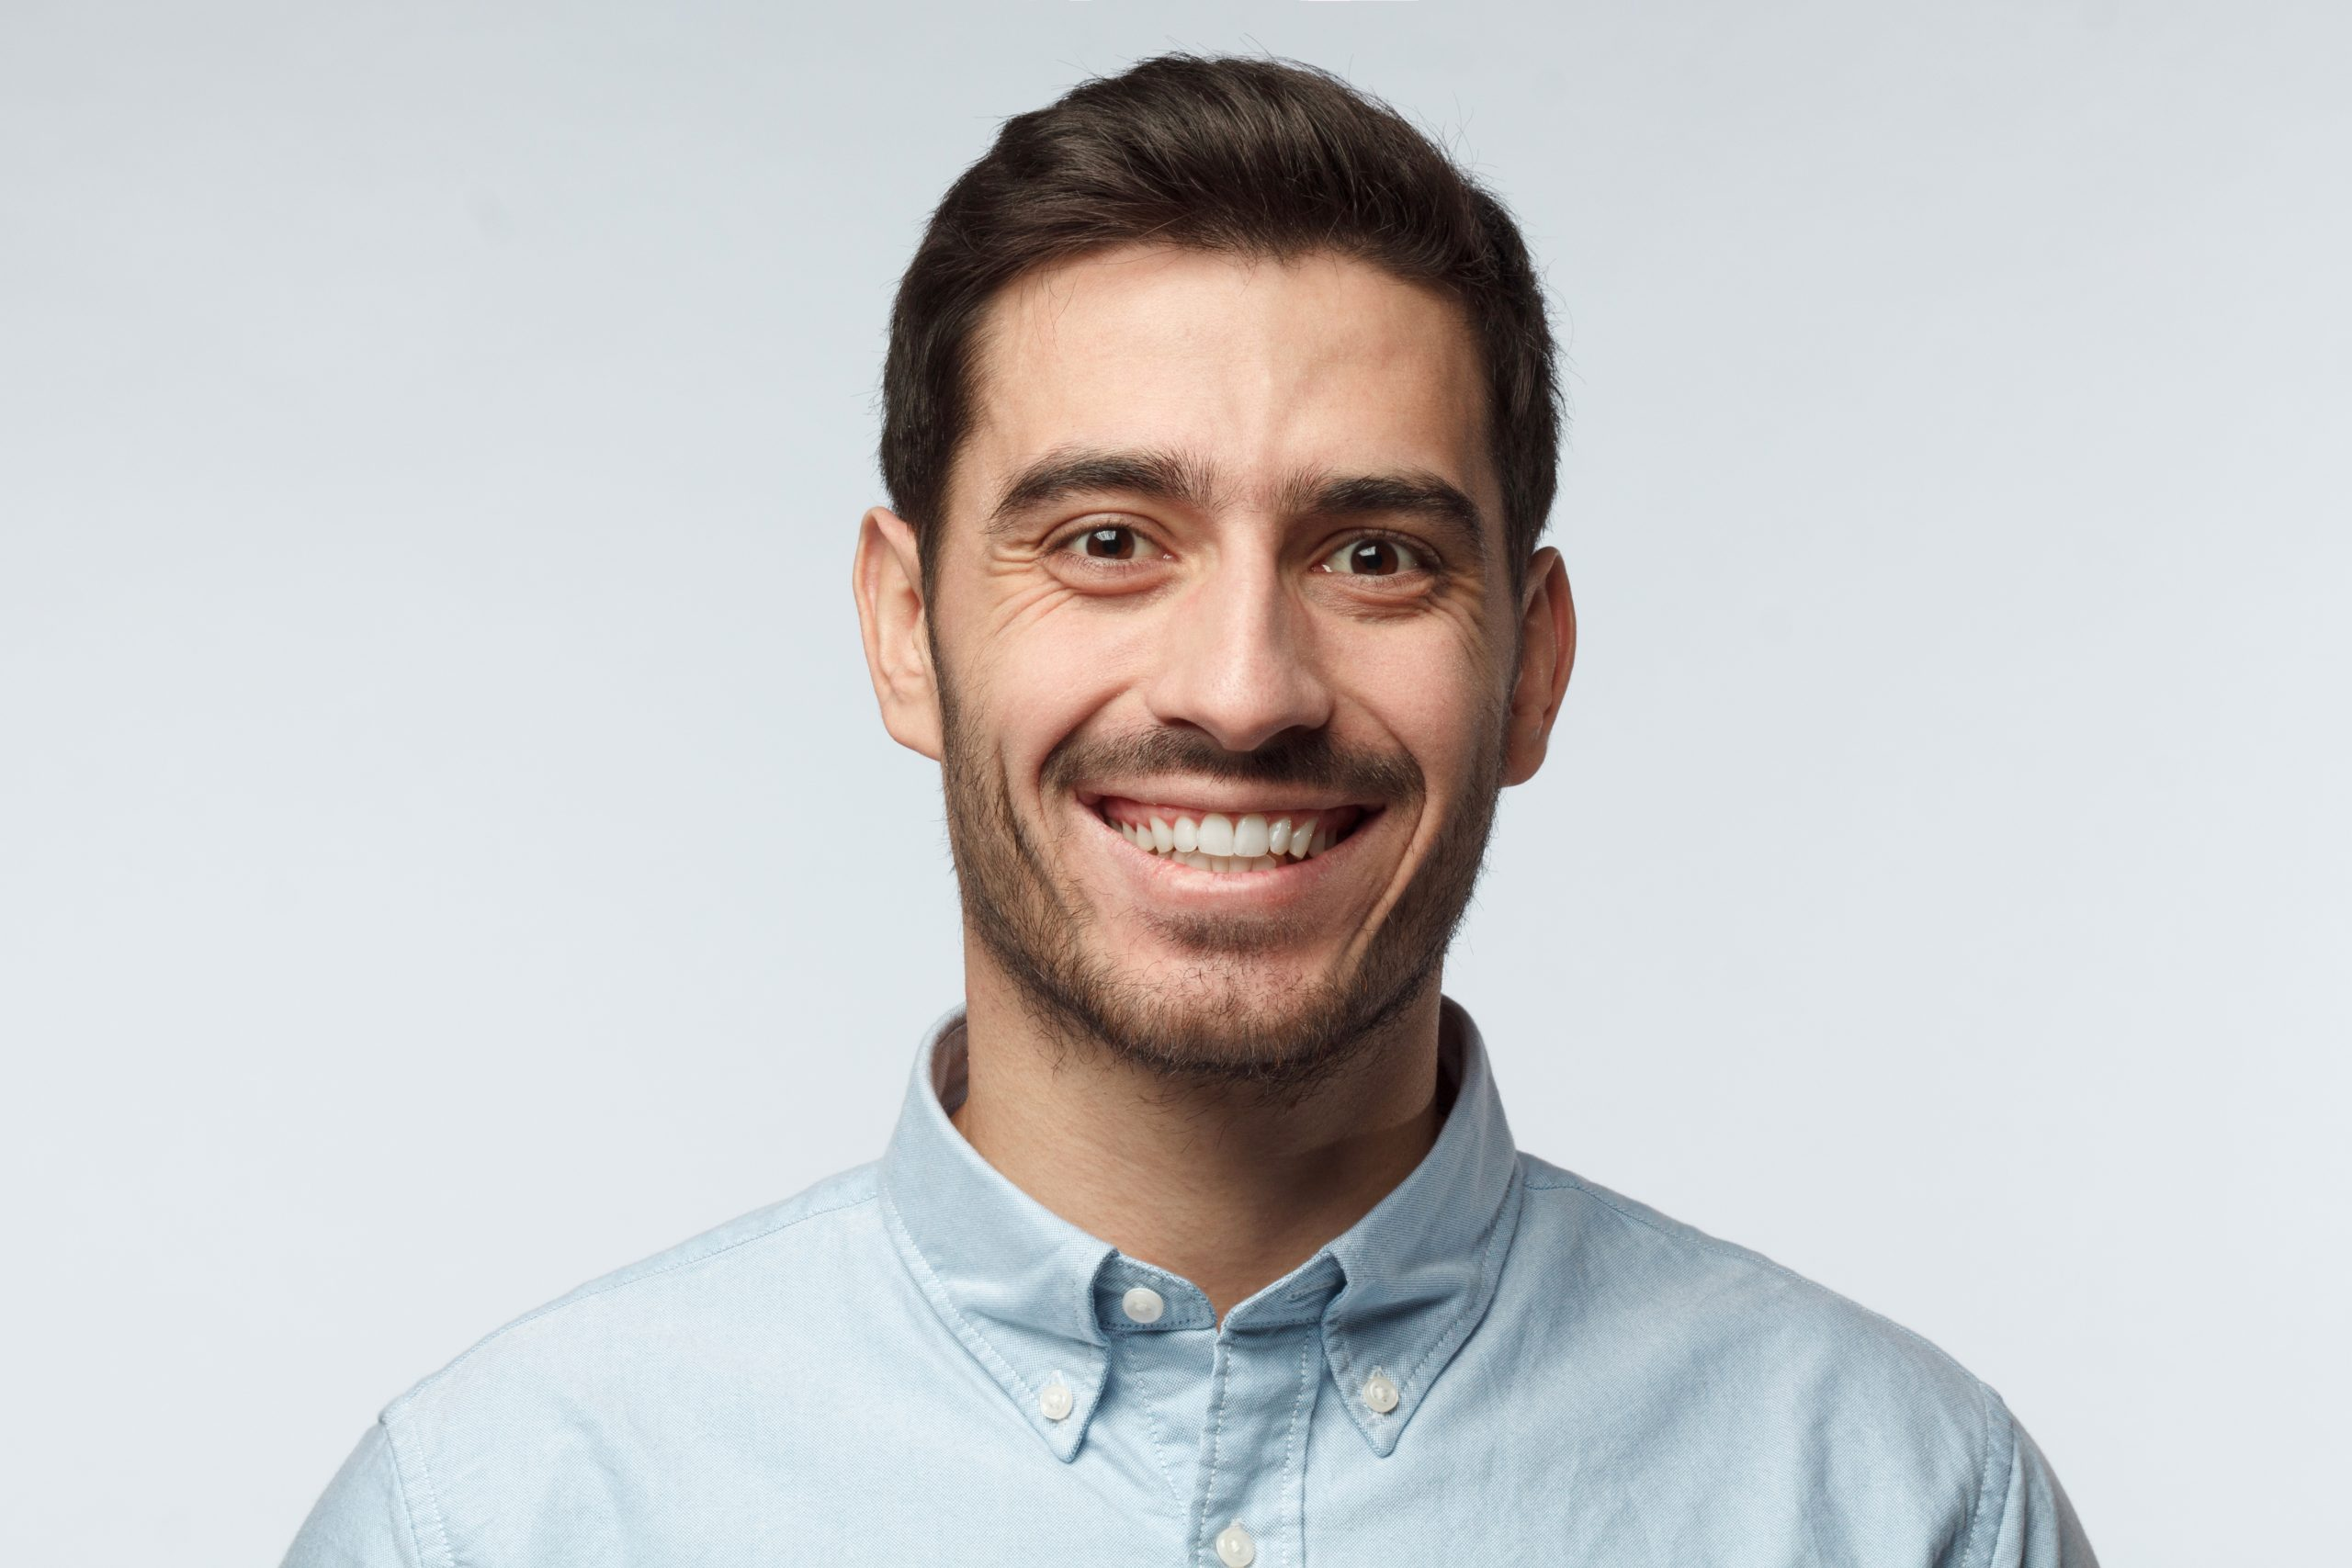 Studio,Headshot,Of,Young,Happy,European,Caucasian,Man,Pictured,Isolated